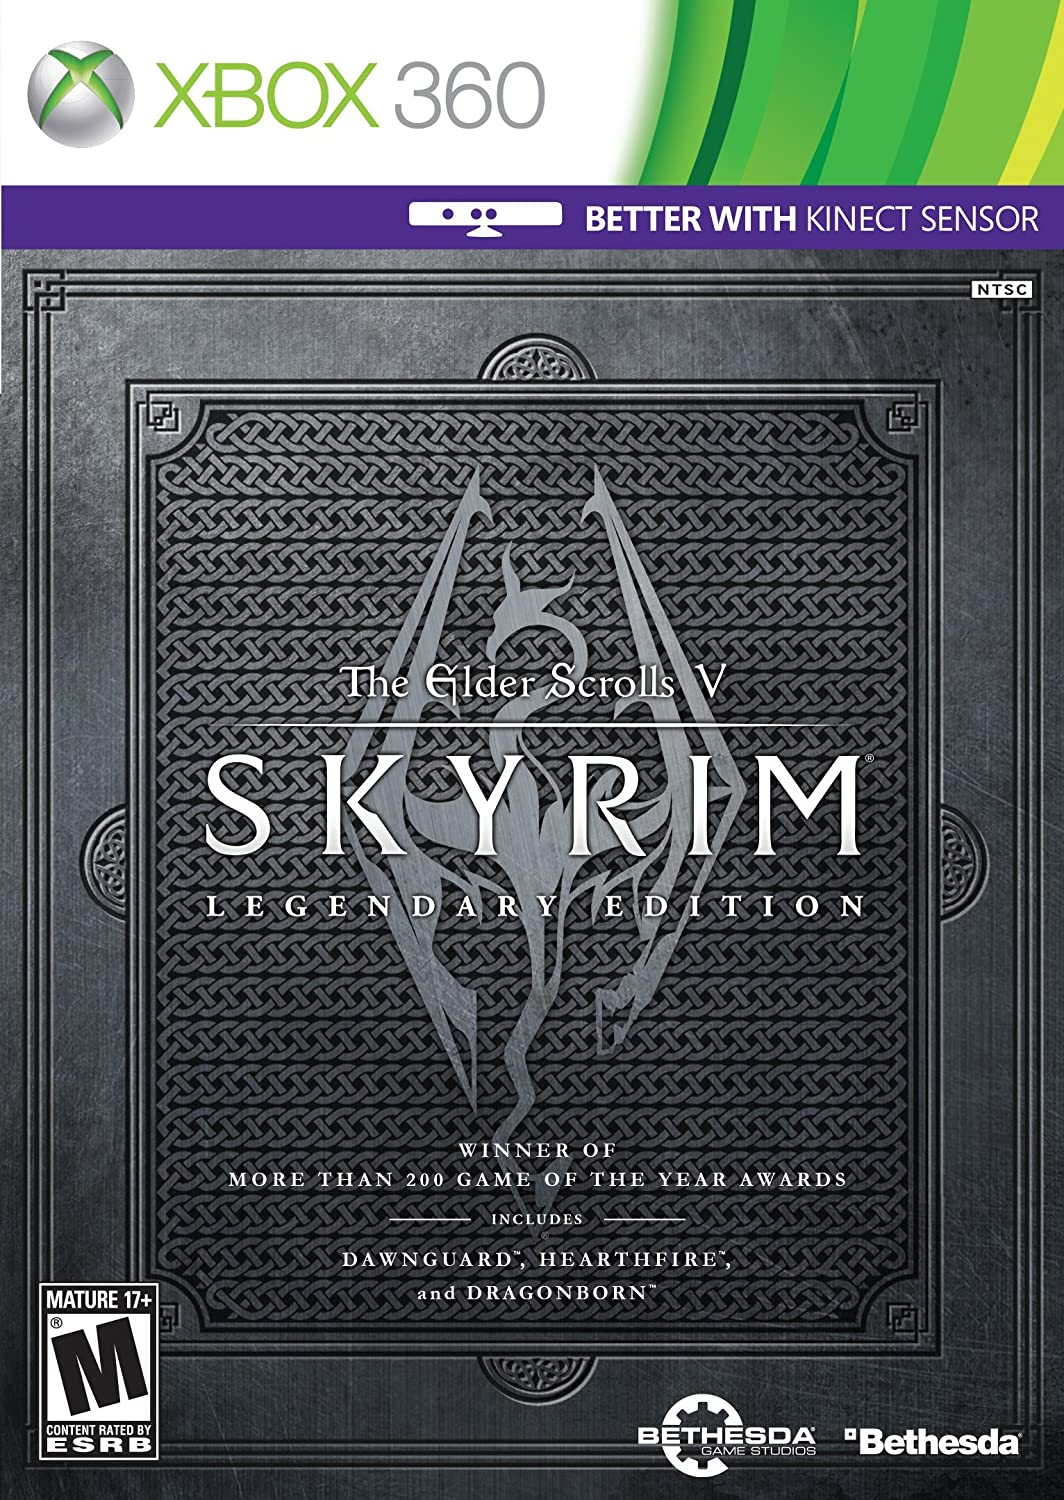 Elder Scrolls V: Skyrim - PC - Legendary Edition: PC: Computer and